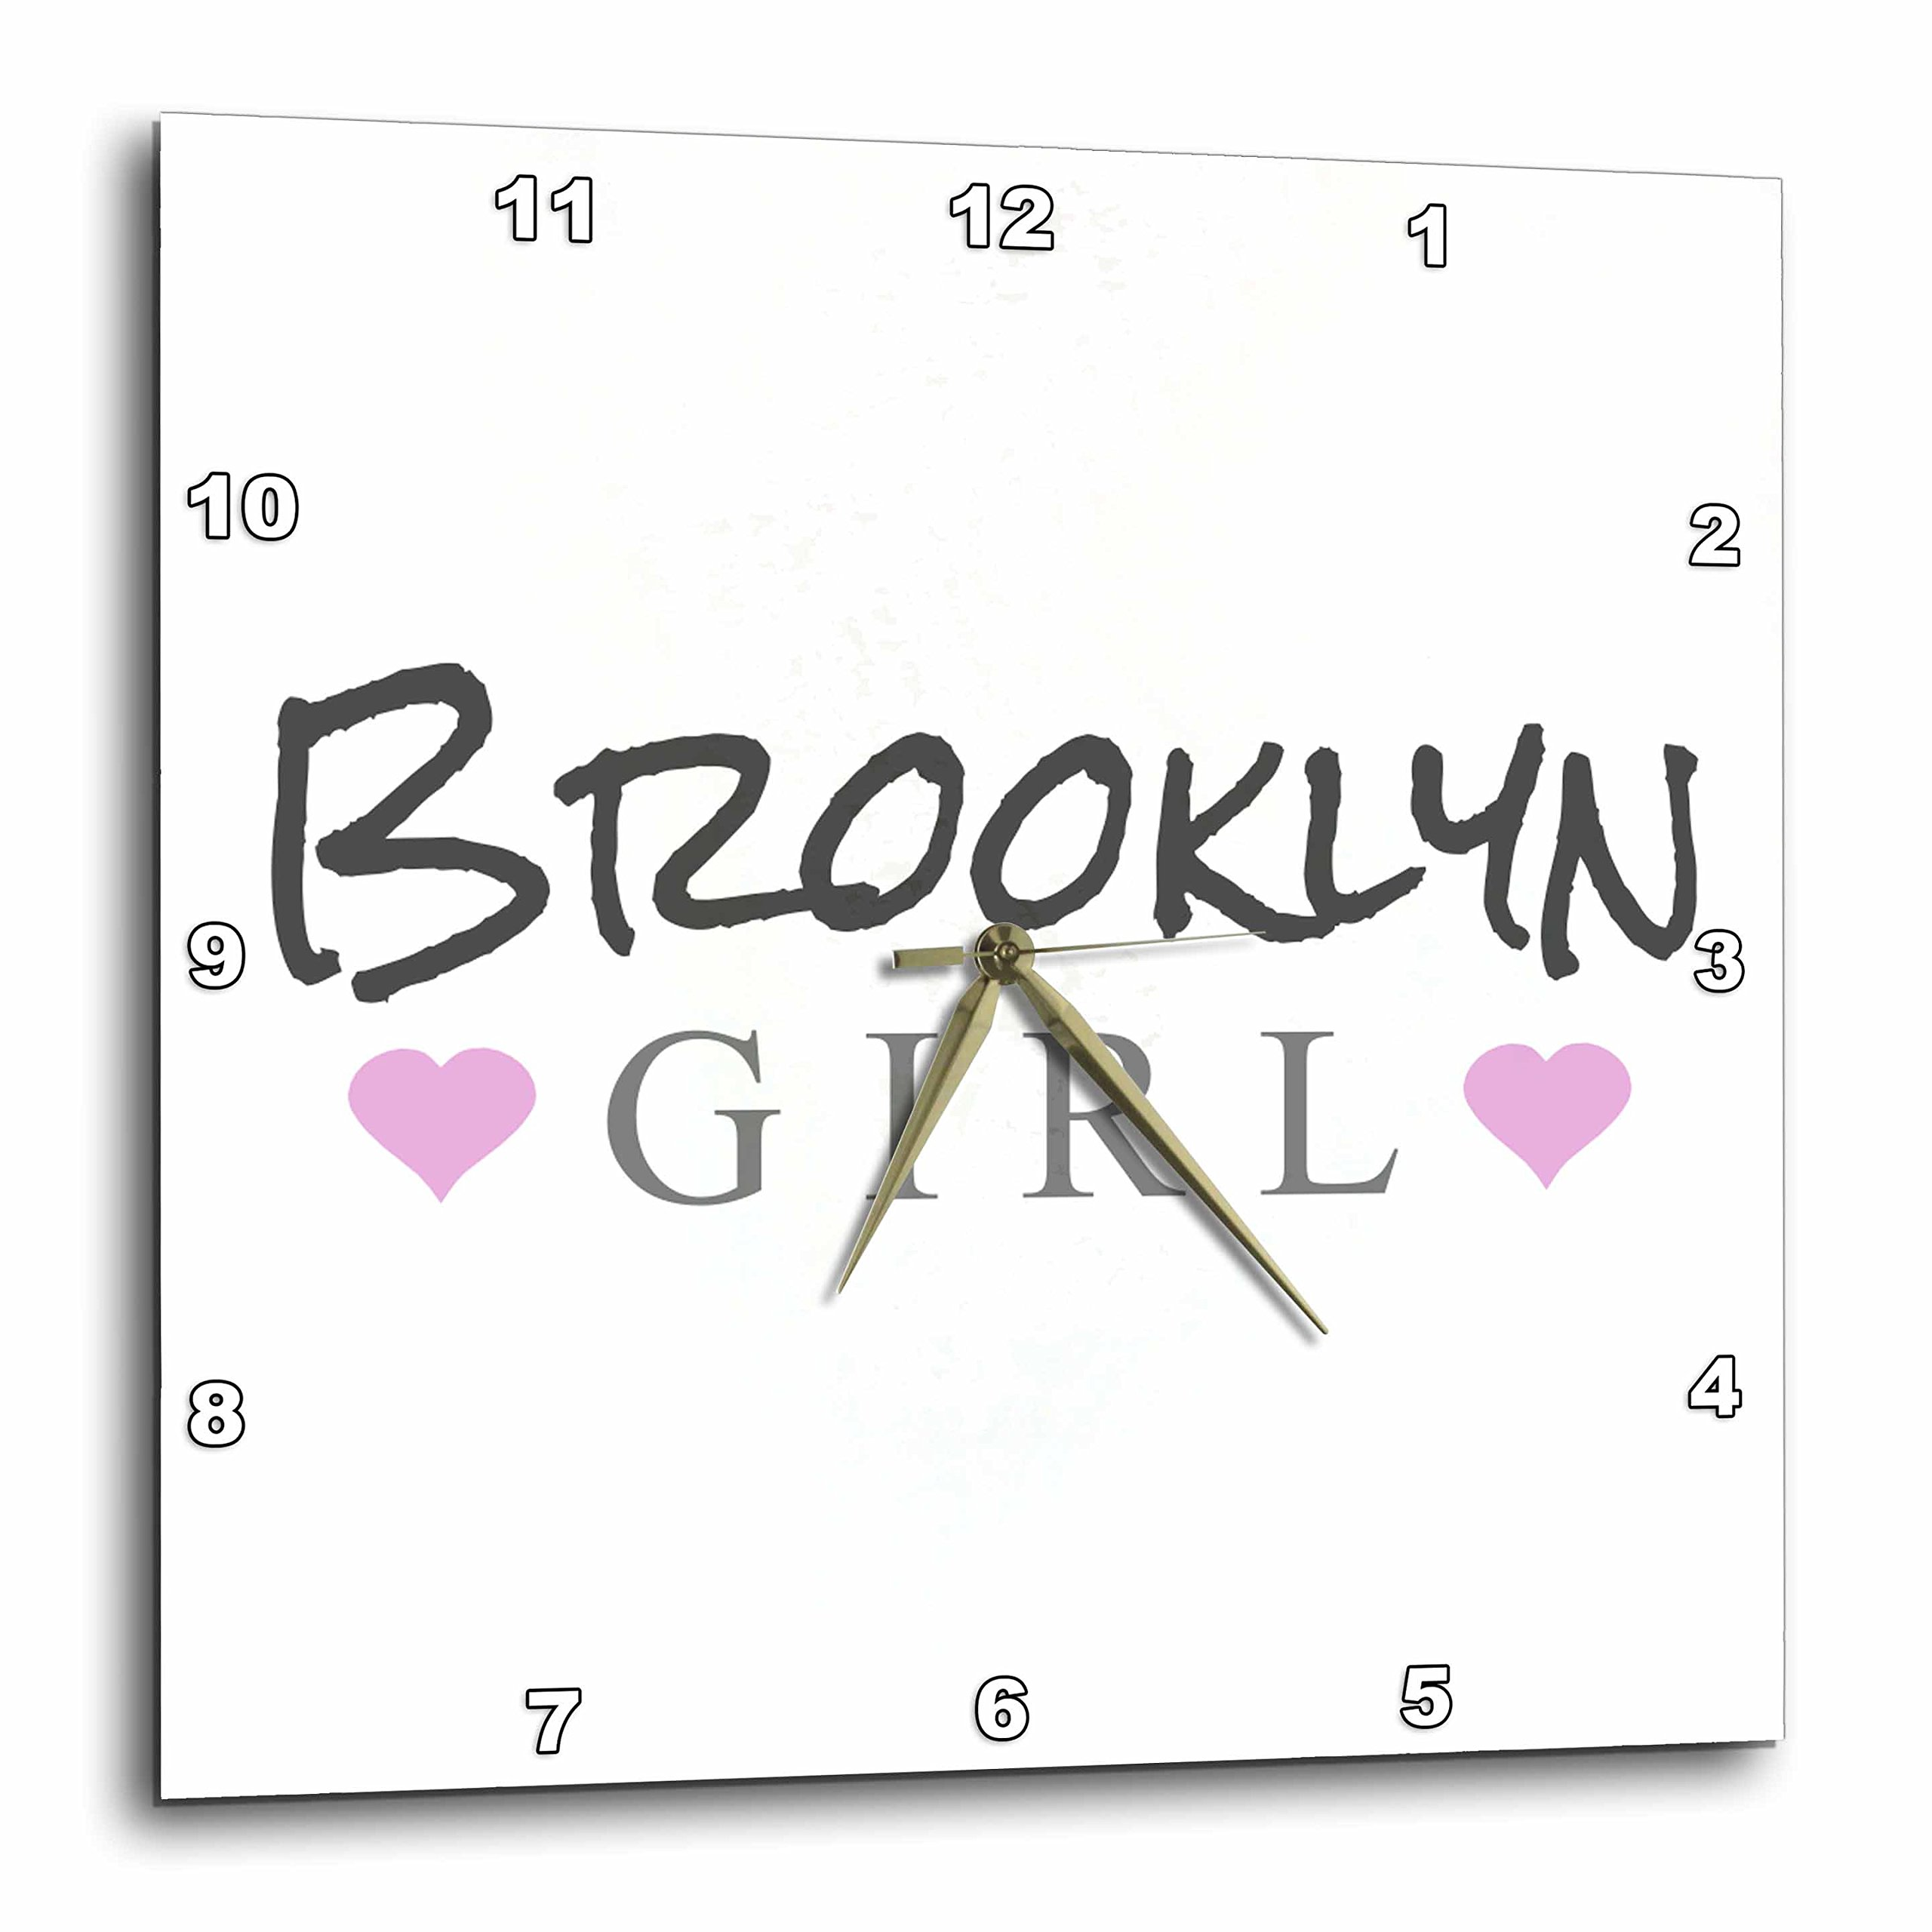 3D Rose dpp_161831_1 3dRose Brooklyn Girl-Home Town City Pride-USA United States of America Text and Cute Girly Pink Hearts-Wall Clock 10-inch